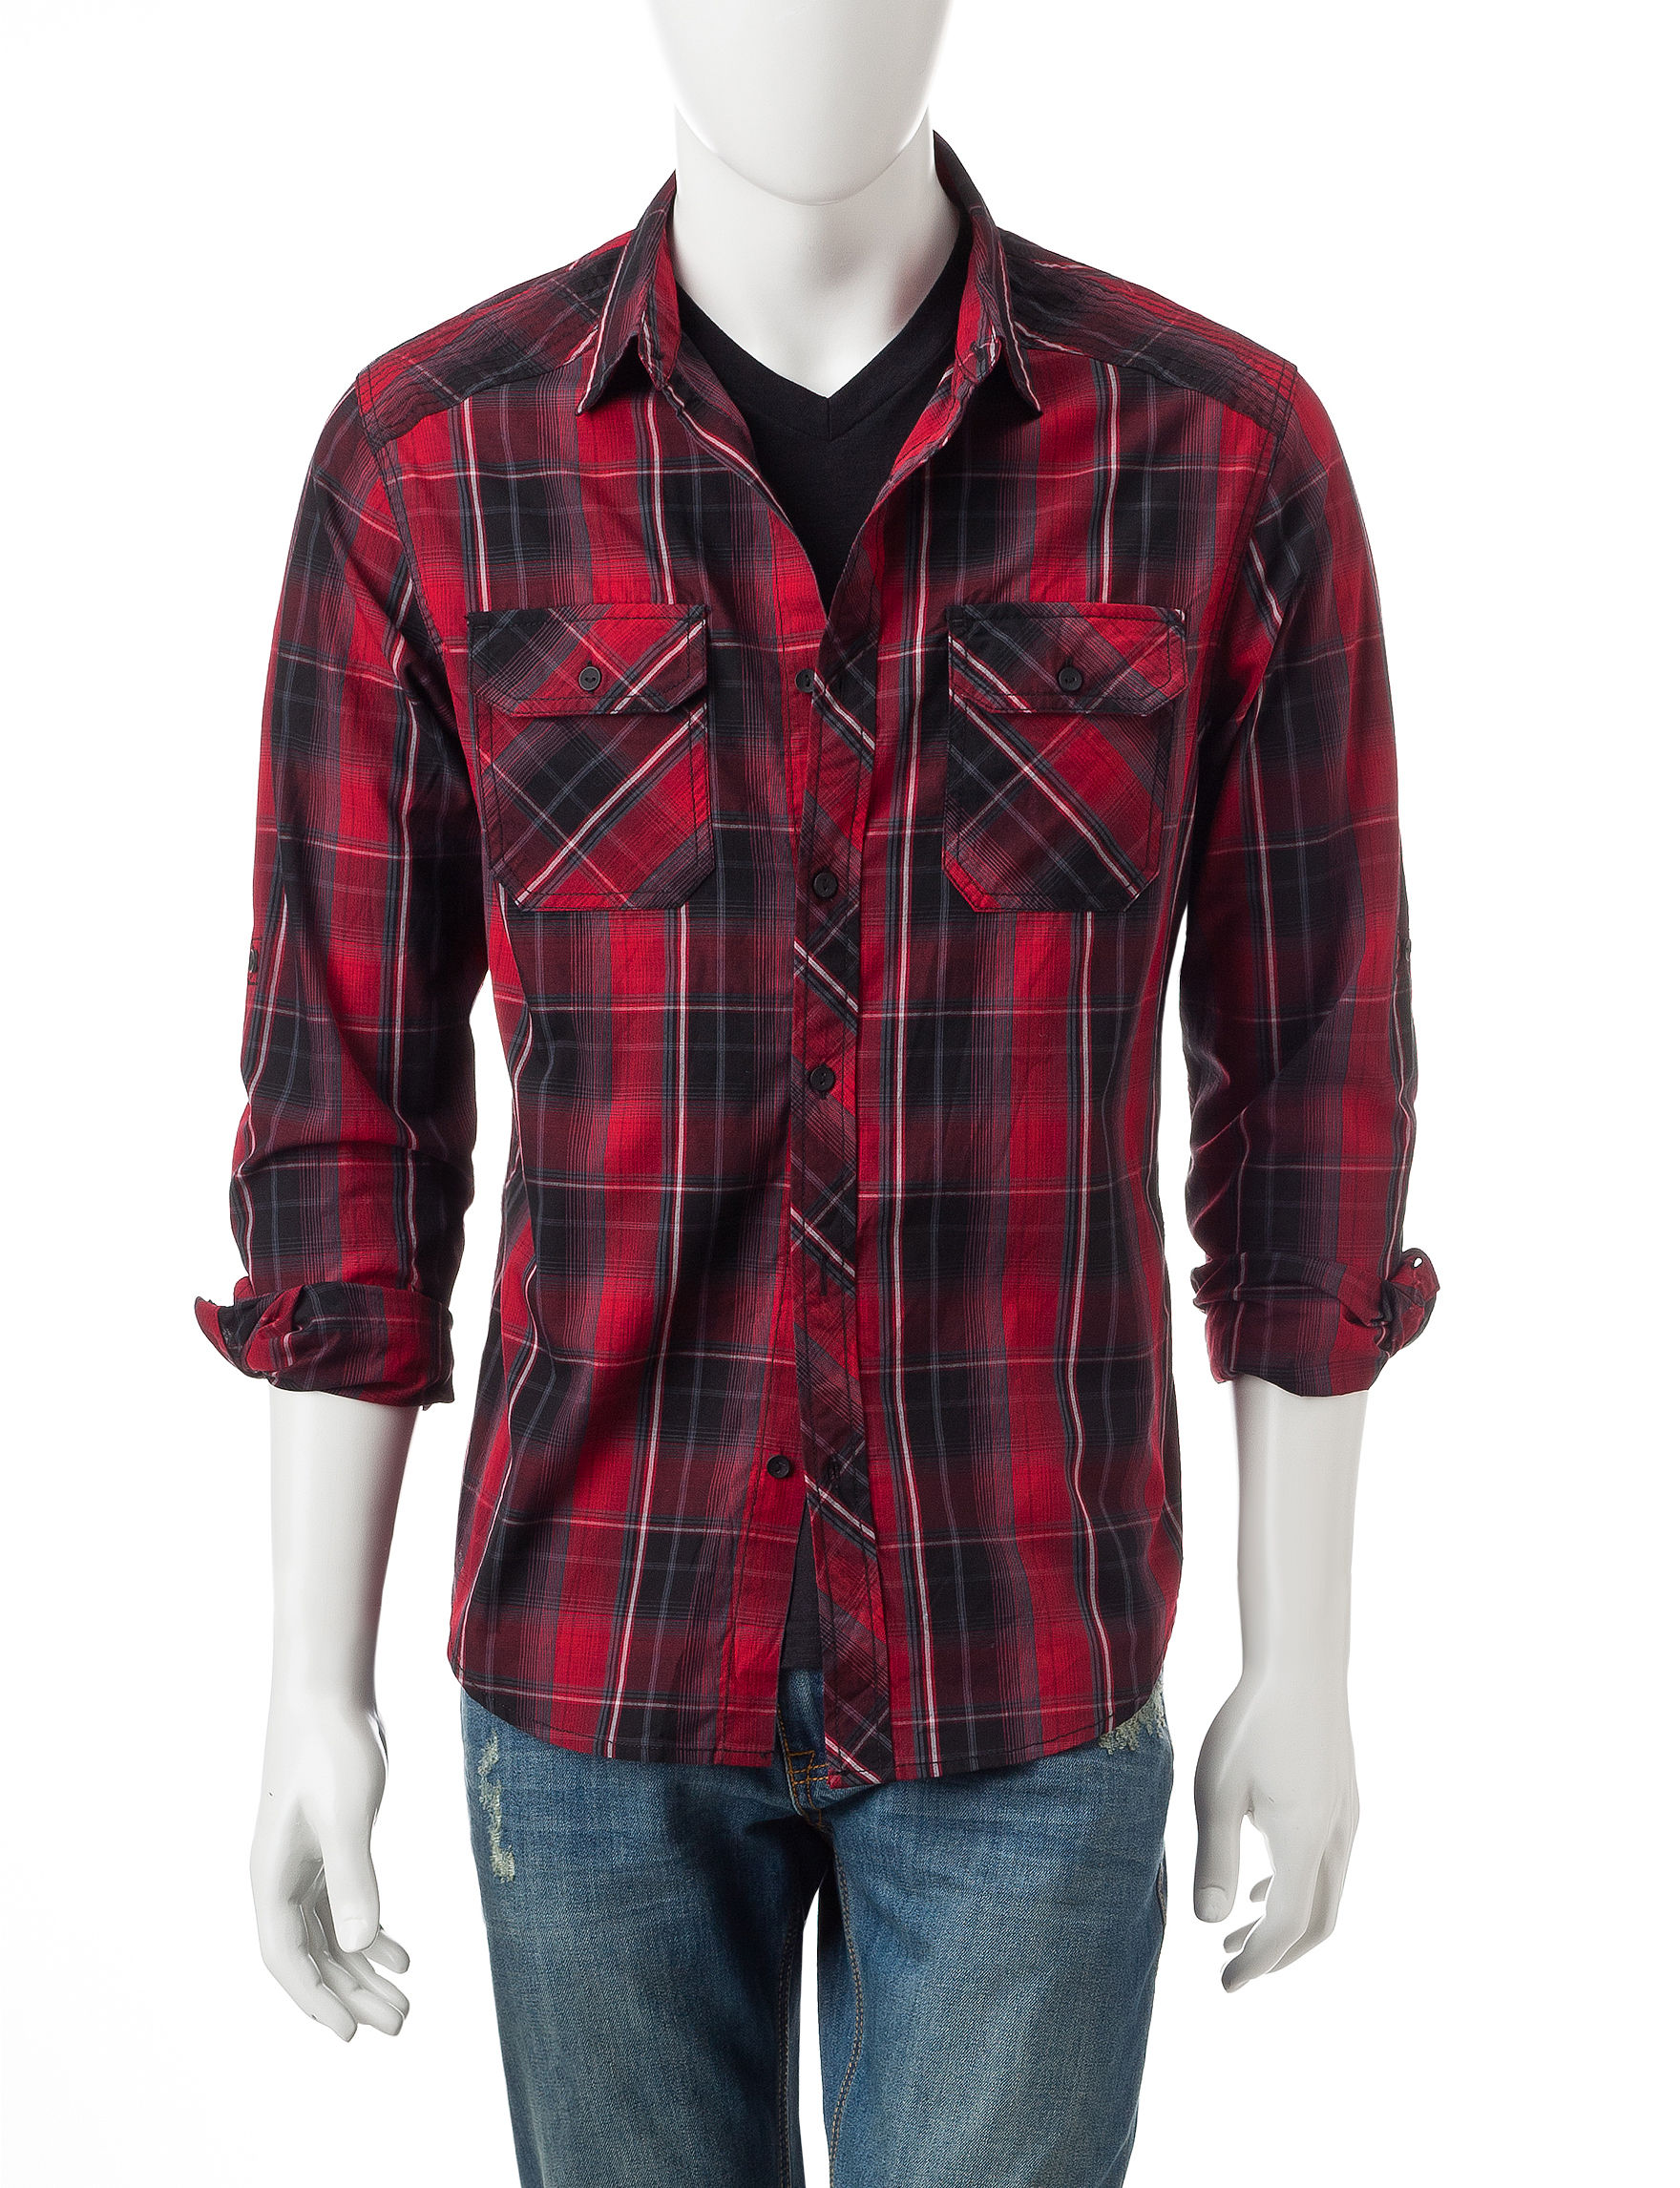 Rustic Blue Chili Pepper Casual Button Down Shirts